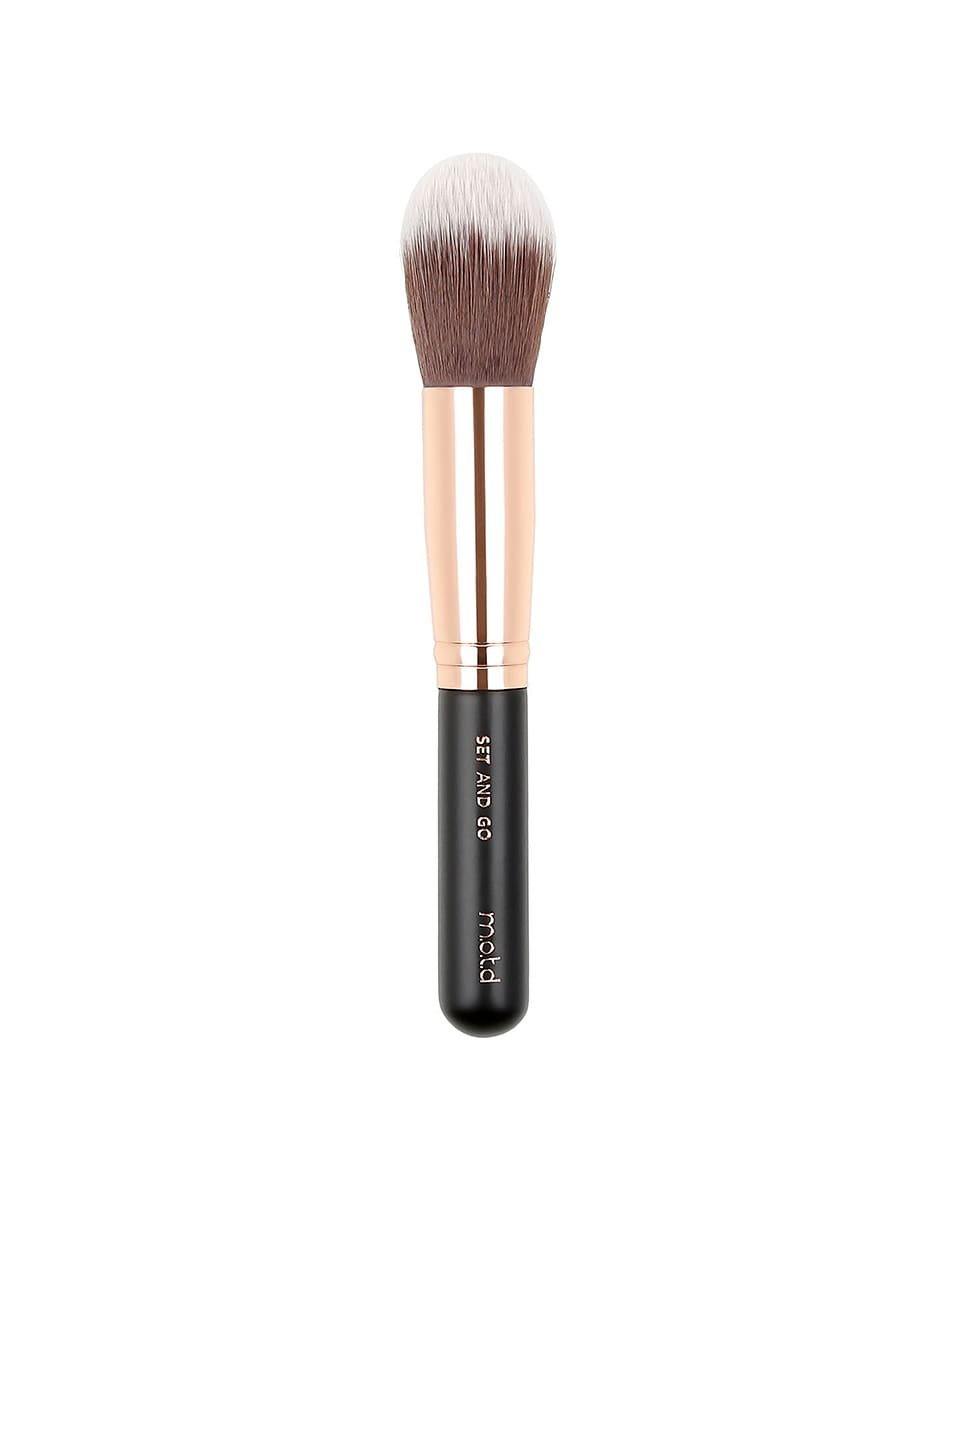 M.O.T.D. Cosmetics Set And Go Powder Brush in All